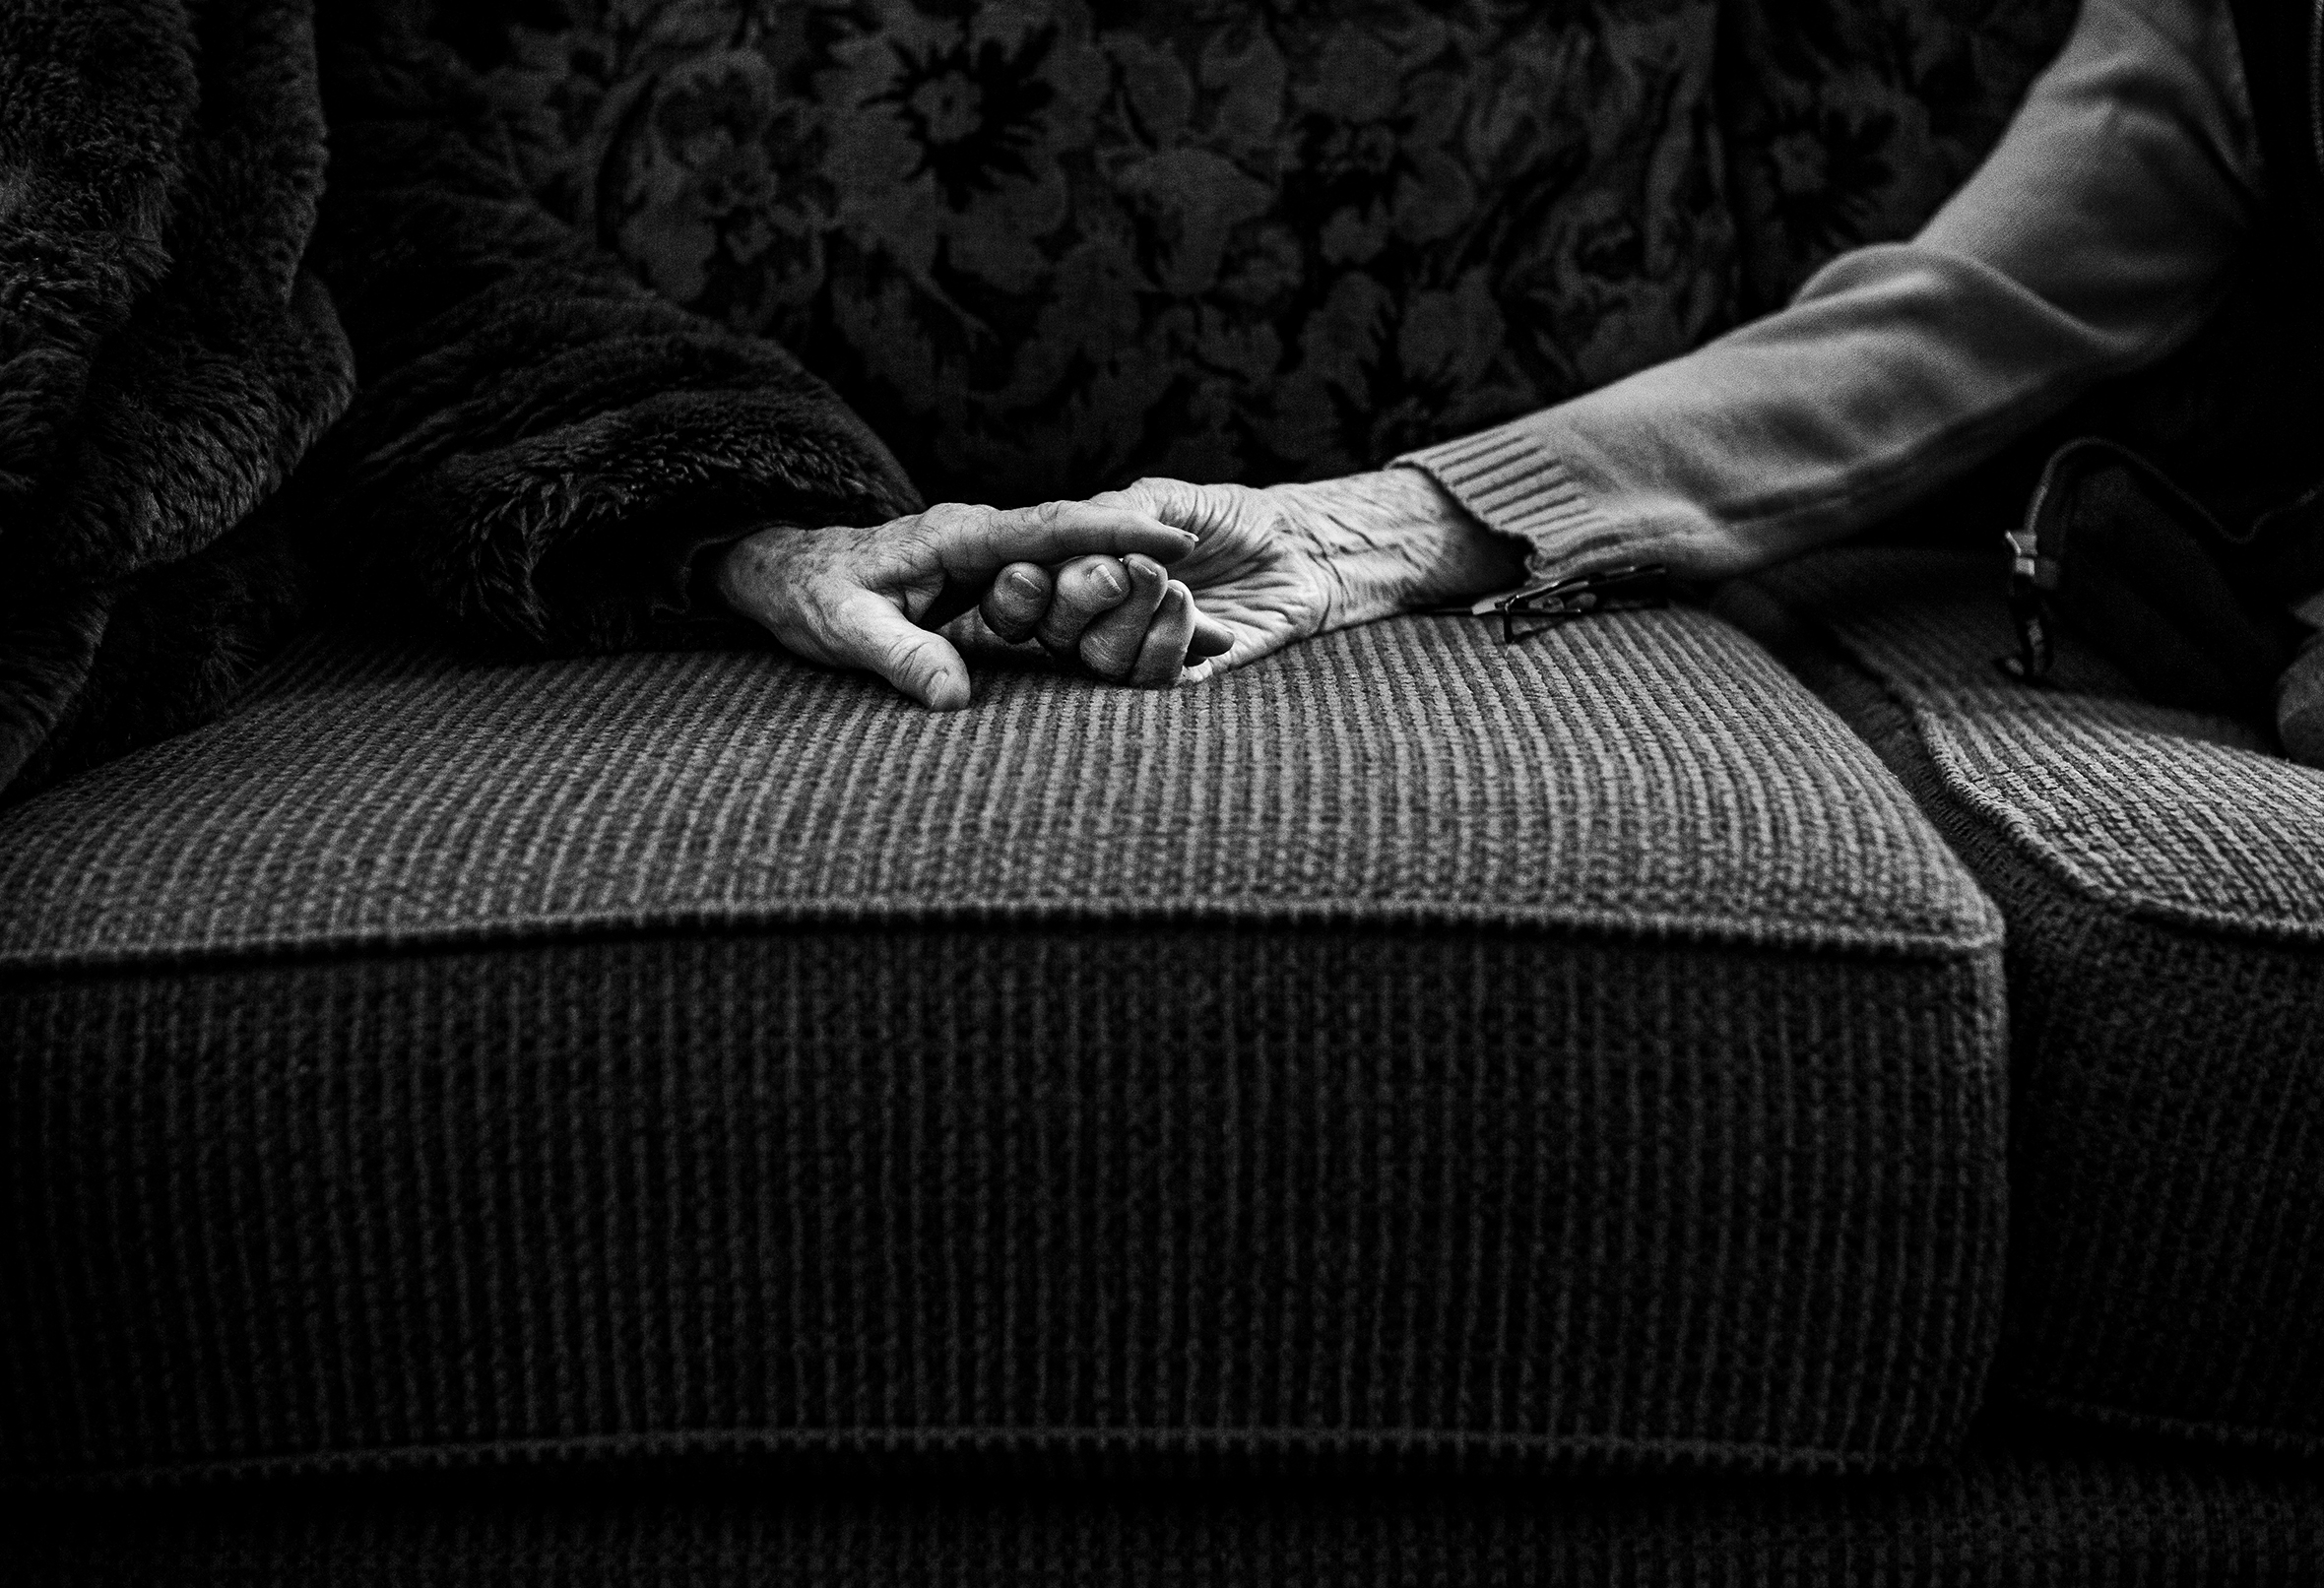 Two elderly people holding hands on a sofa with a close-up on the hands.